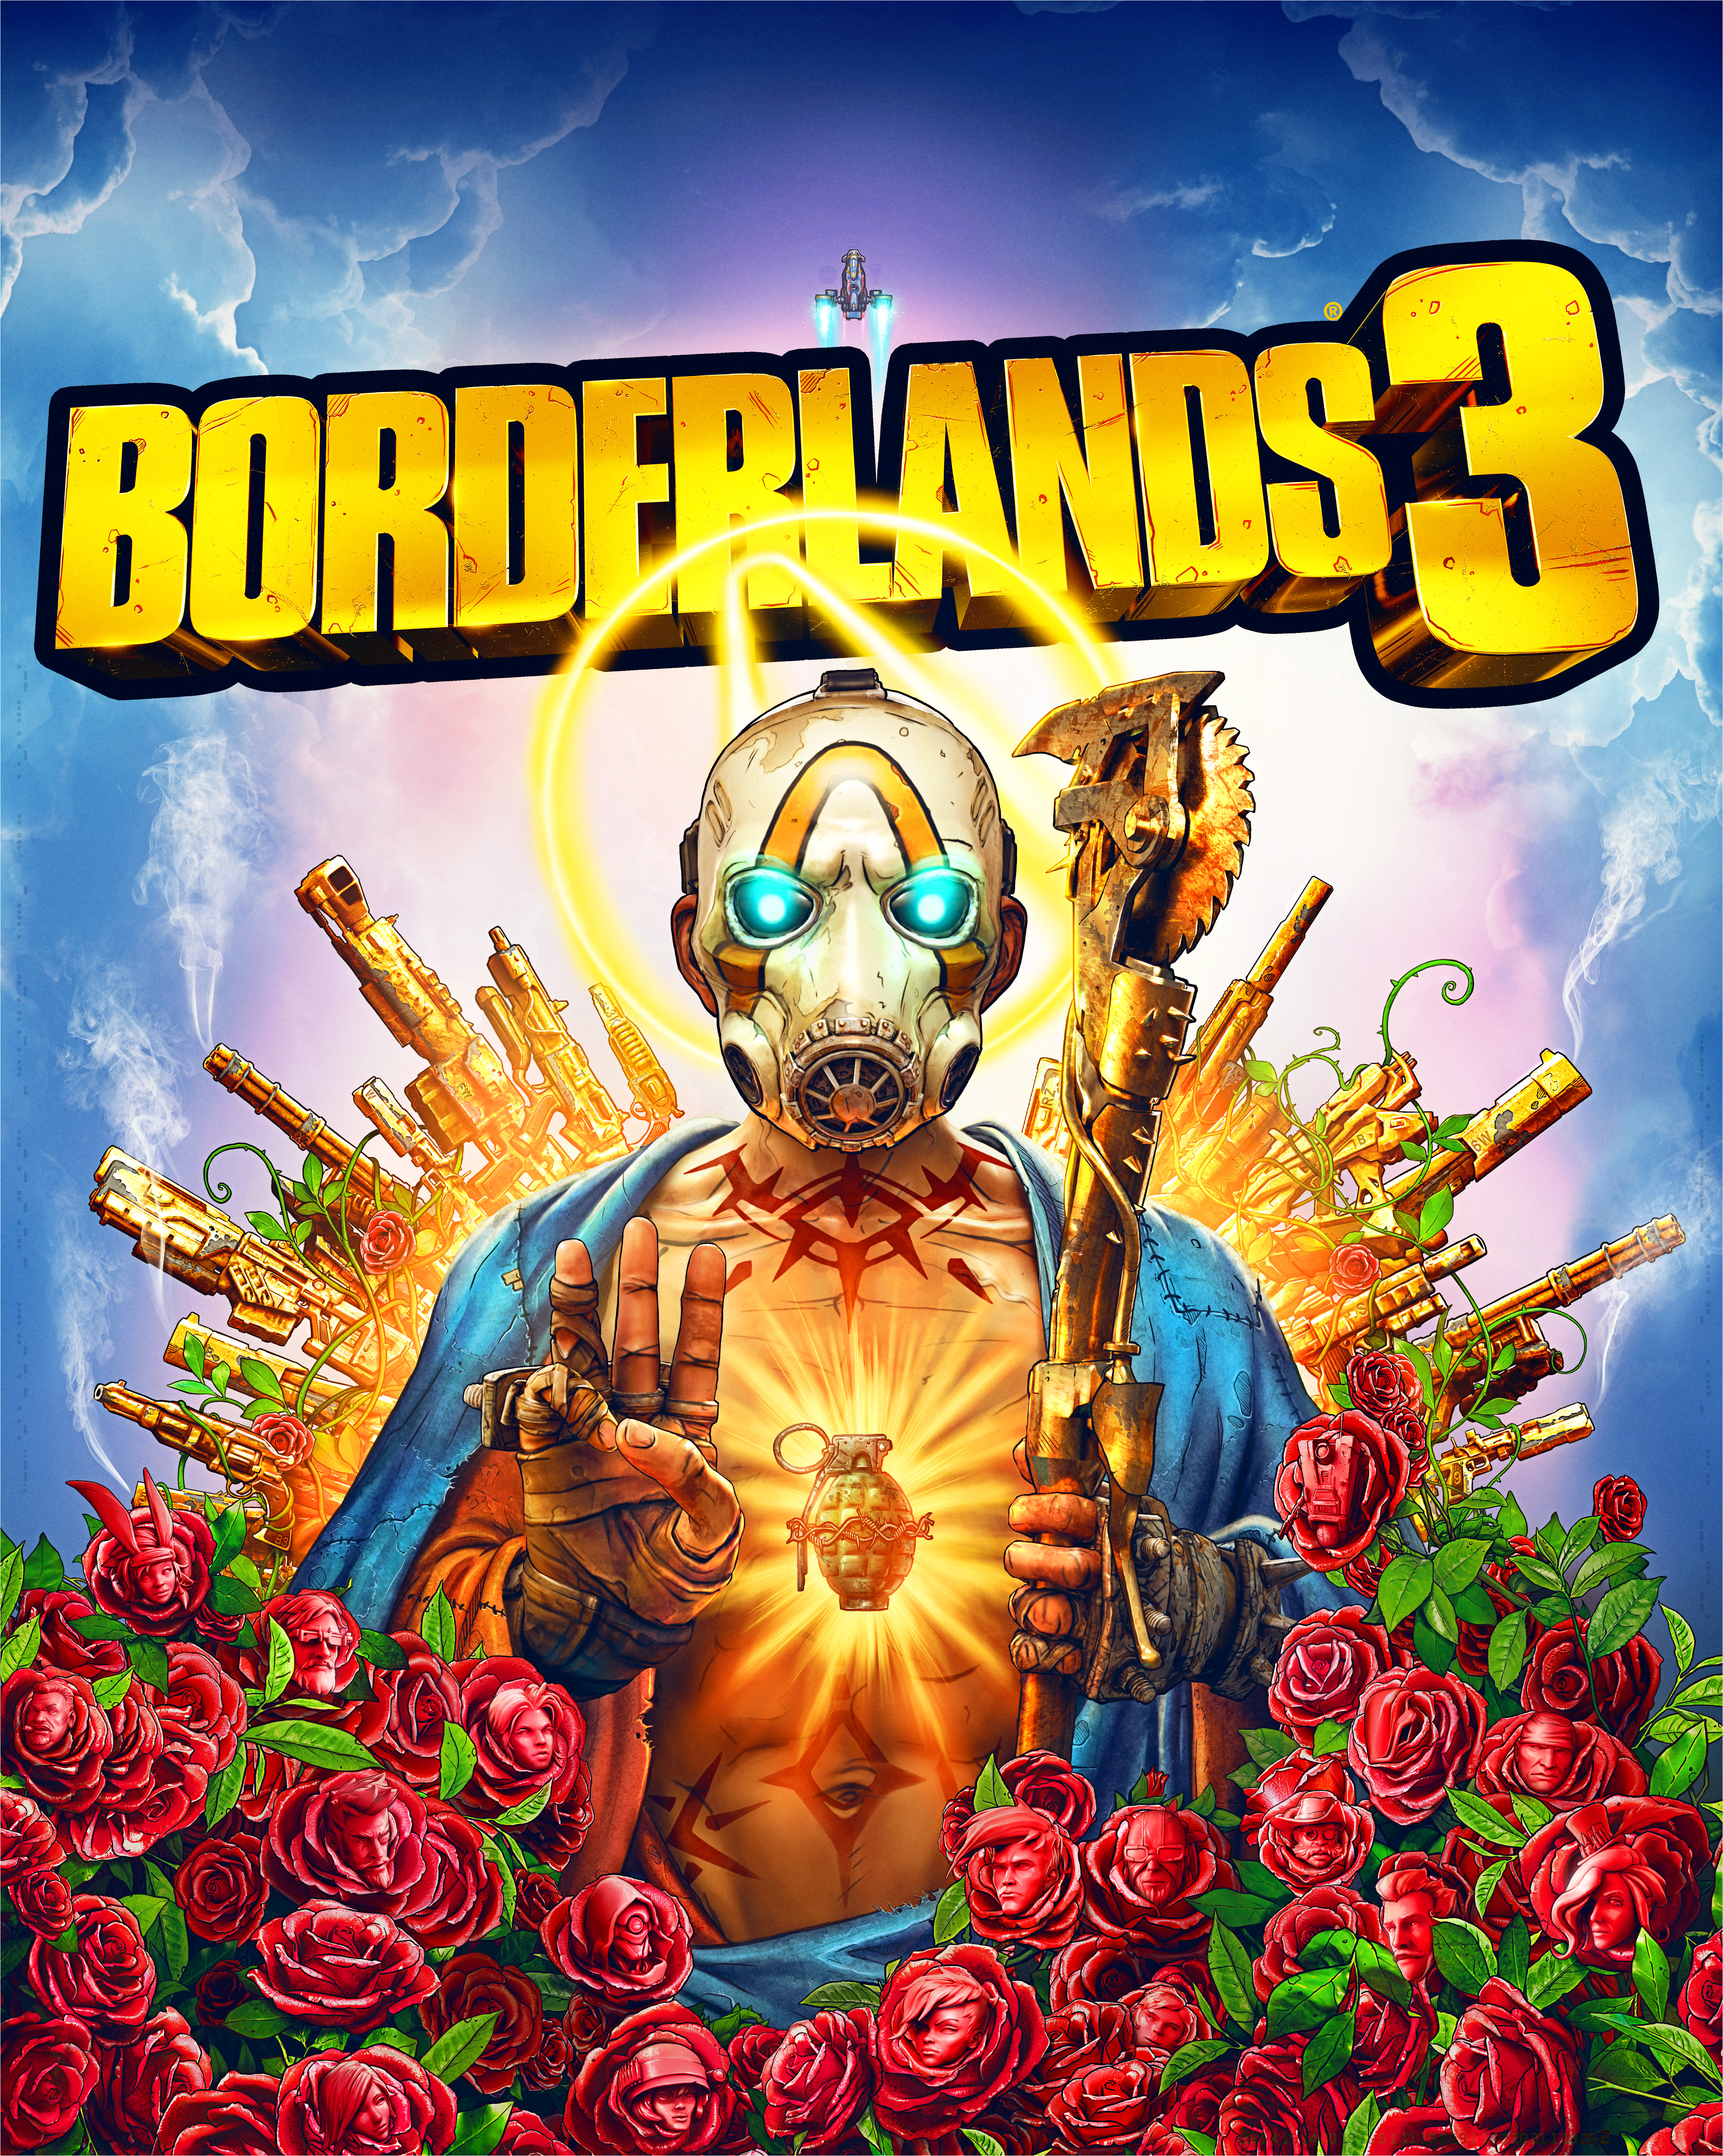 Borderlands 3: DLC Directors Cut will be released in March 2021